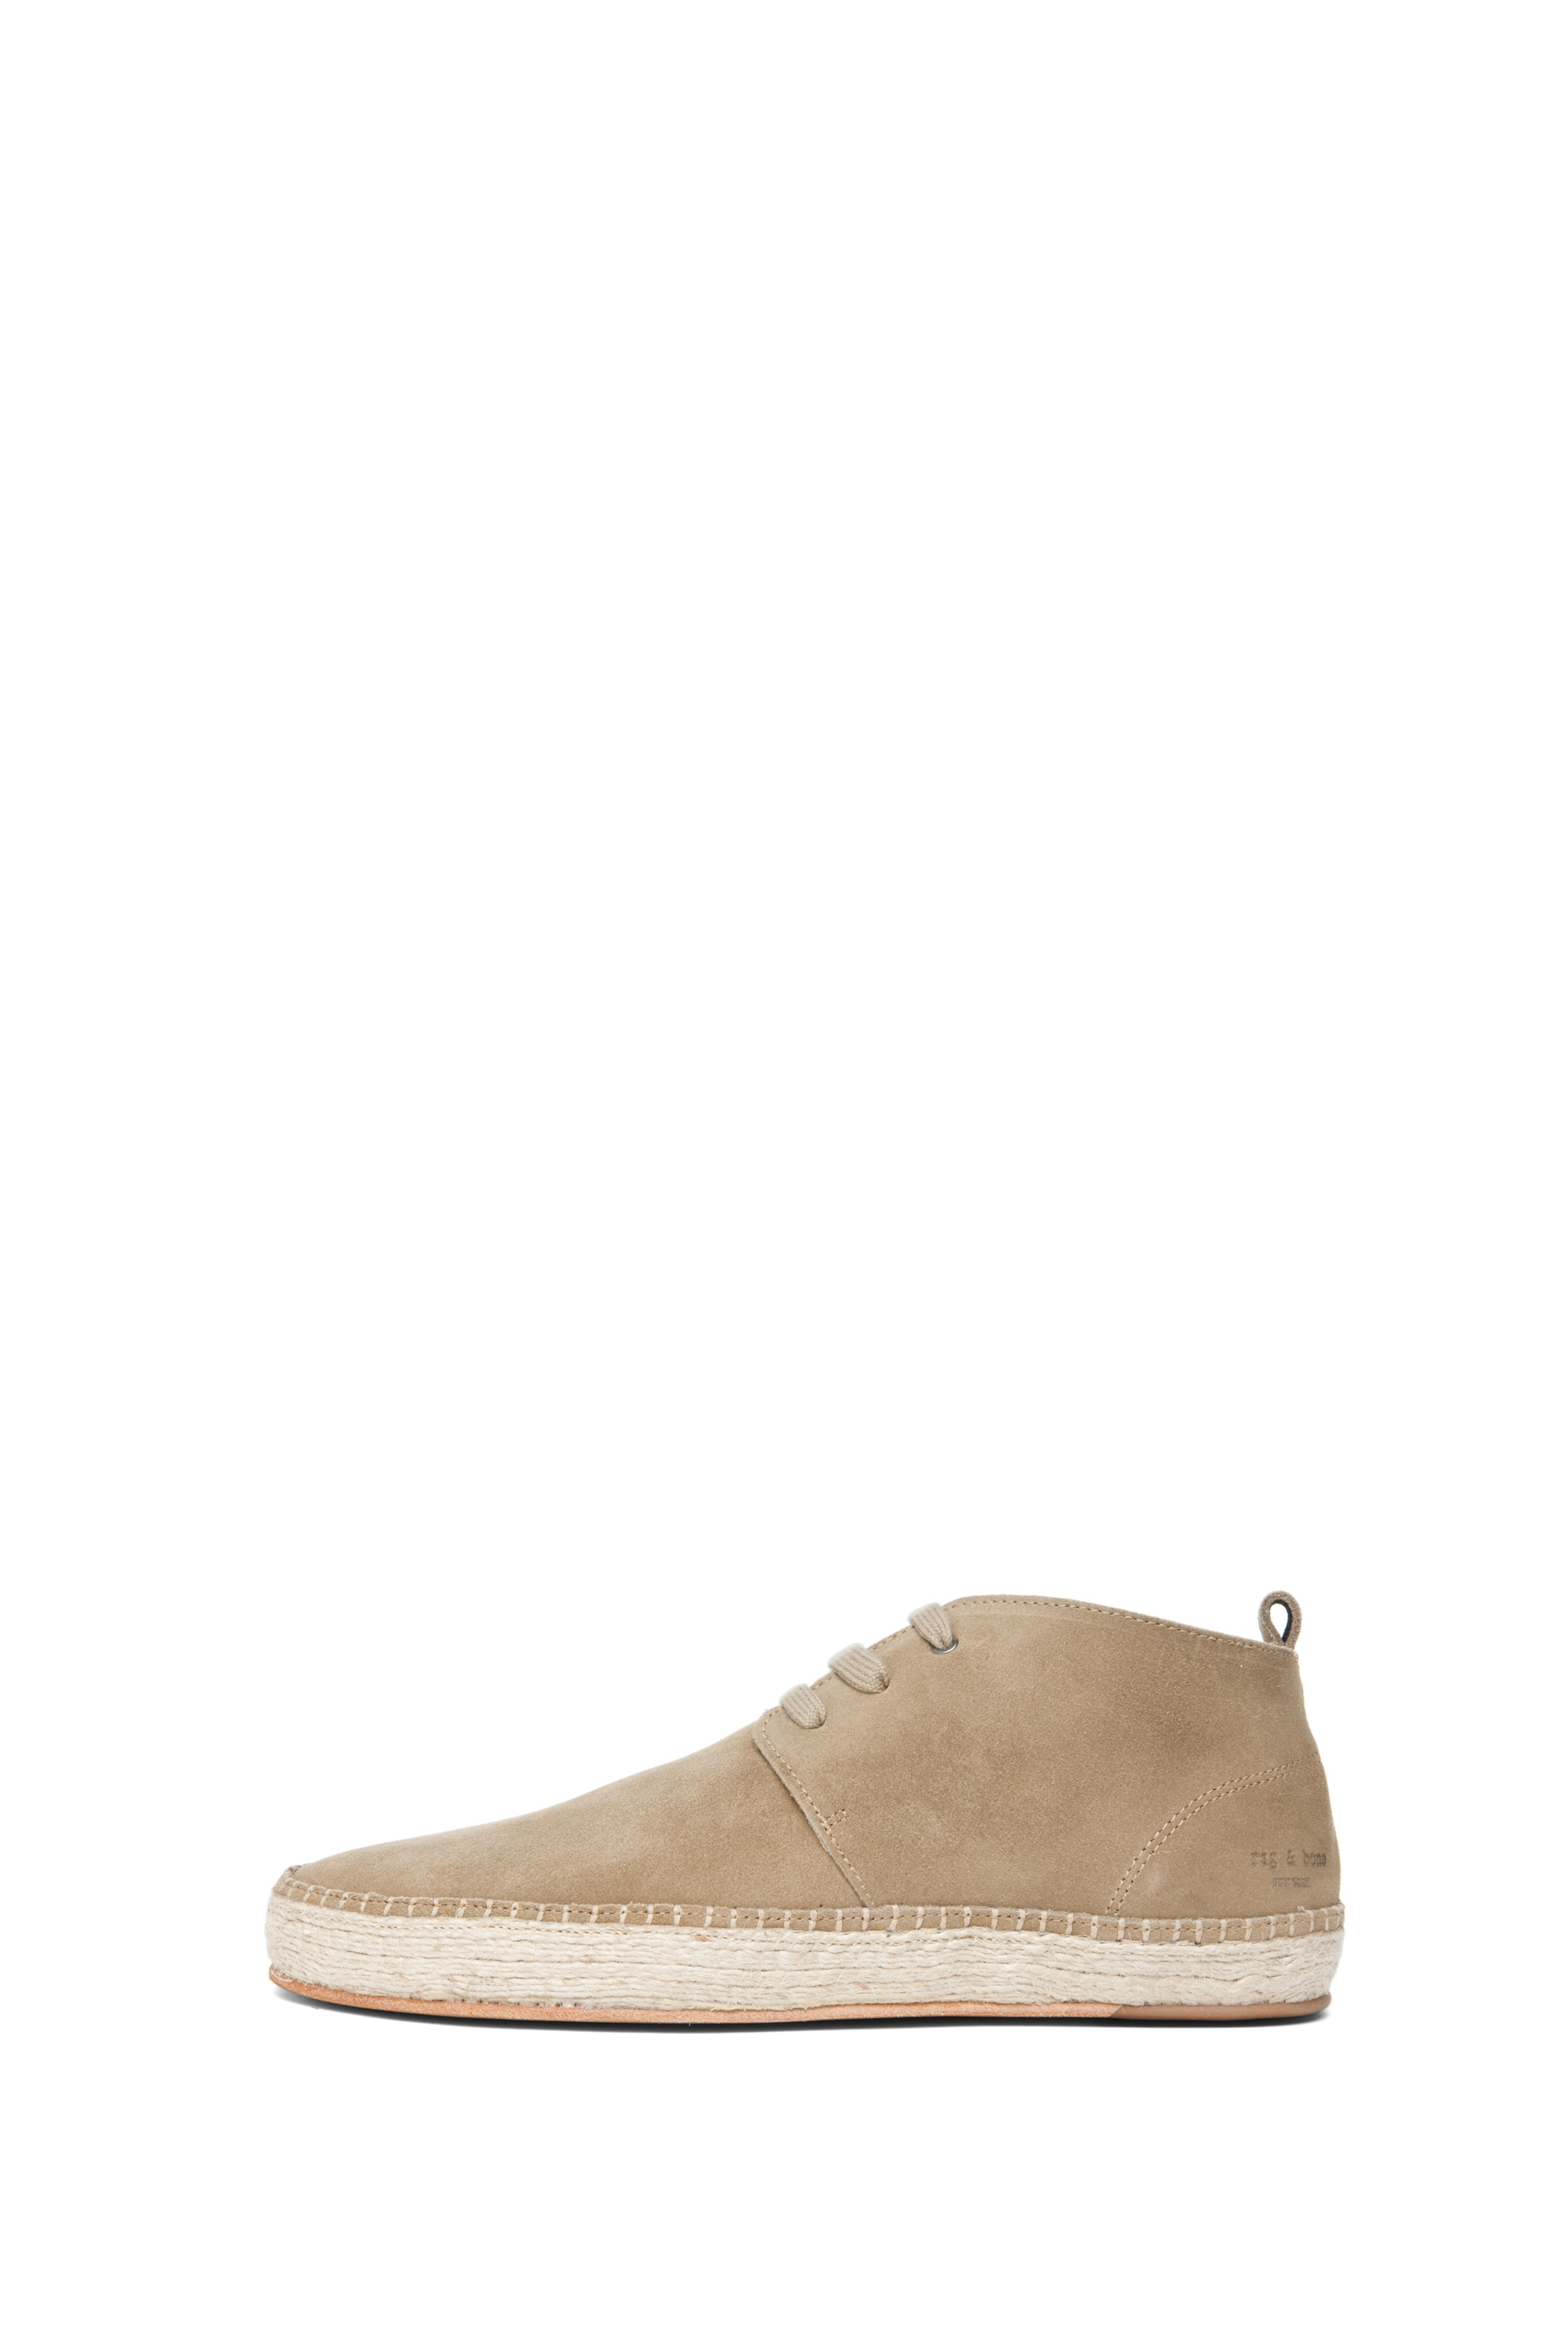 Image 1 of Rag & Bone Clifton Desert Boot Espadrille in Stone